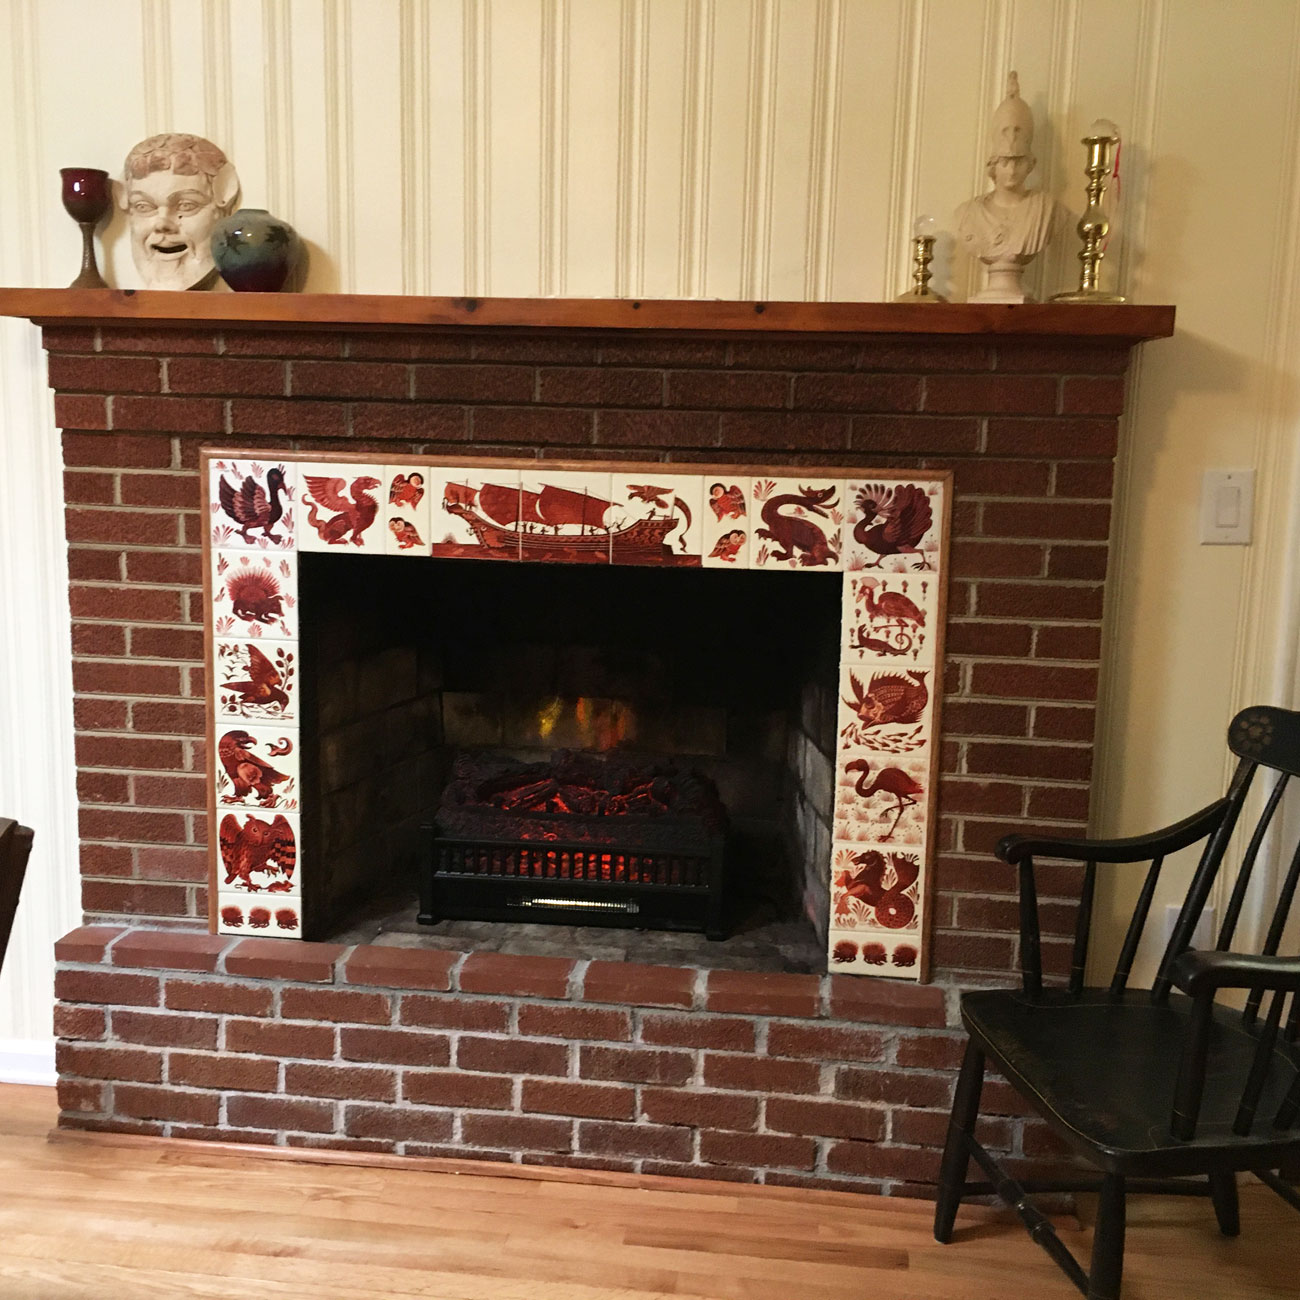 Brick and Red Lustre Tile fireplace